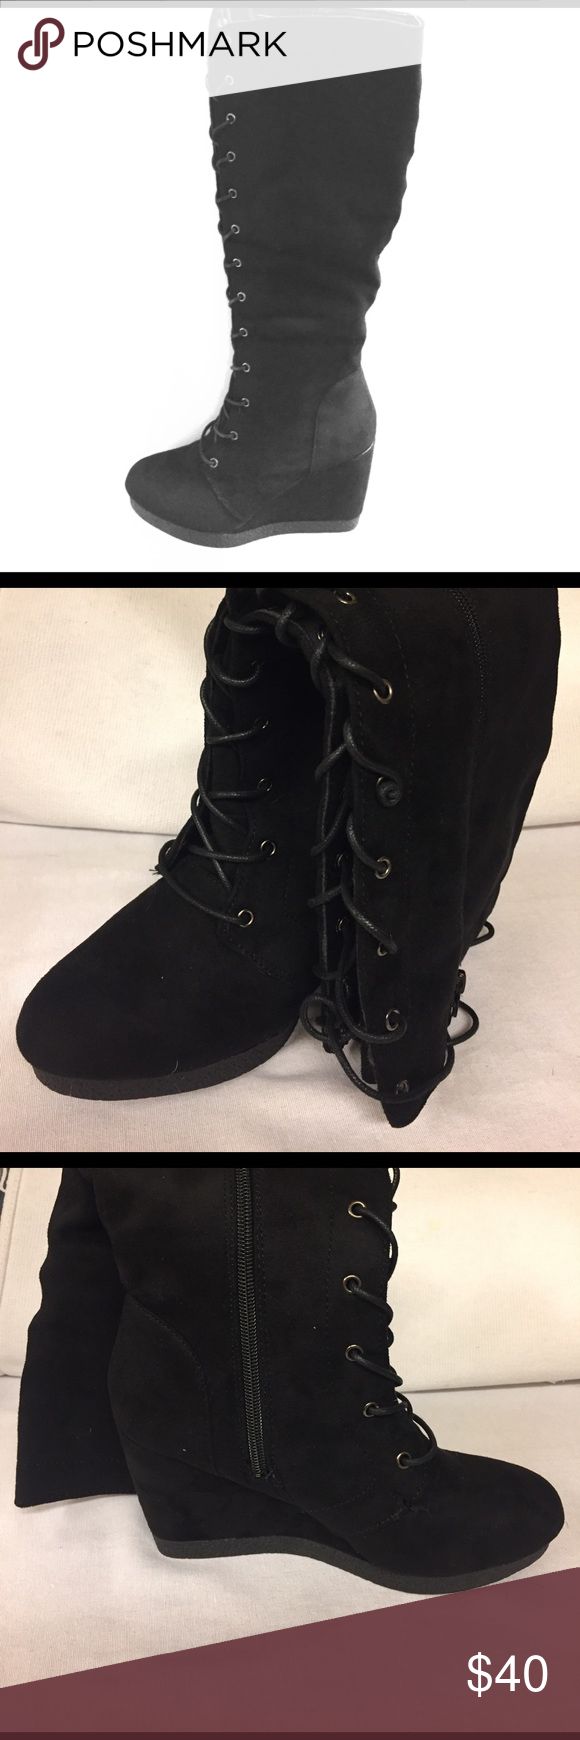 Brand New black lace up wedge boots! Brand new lace up/zippered wedge boots in all black.  Khali wedge boot in size 7; these are knee high. Shoes Lace Up Boots